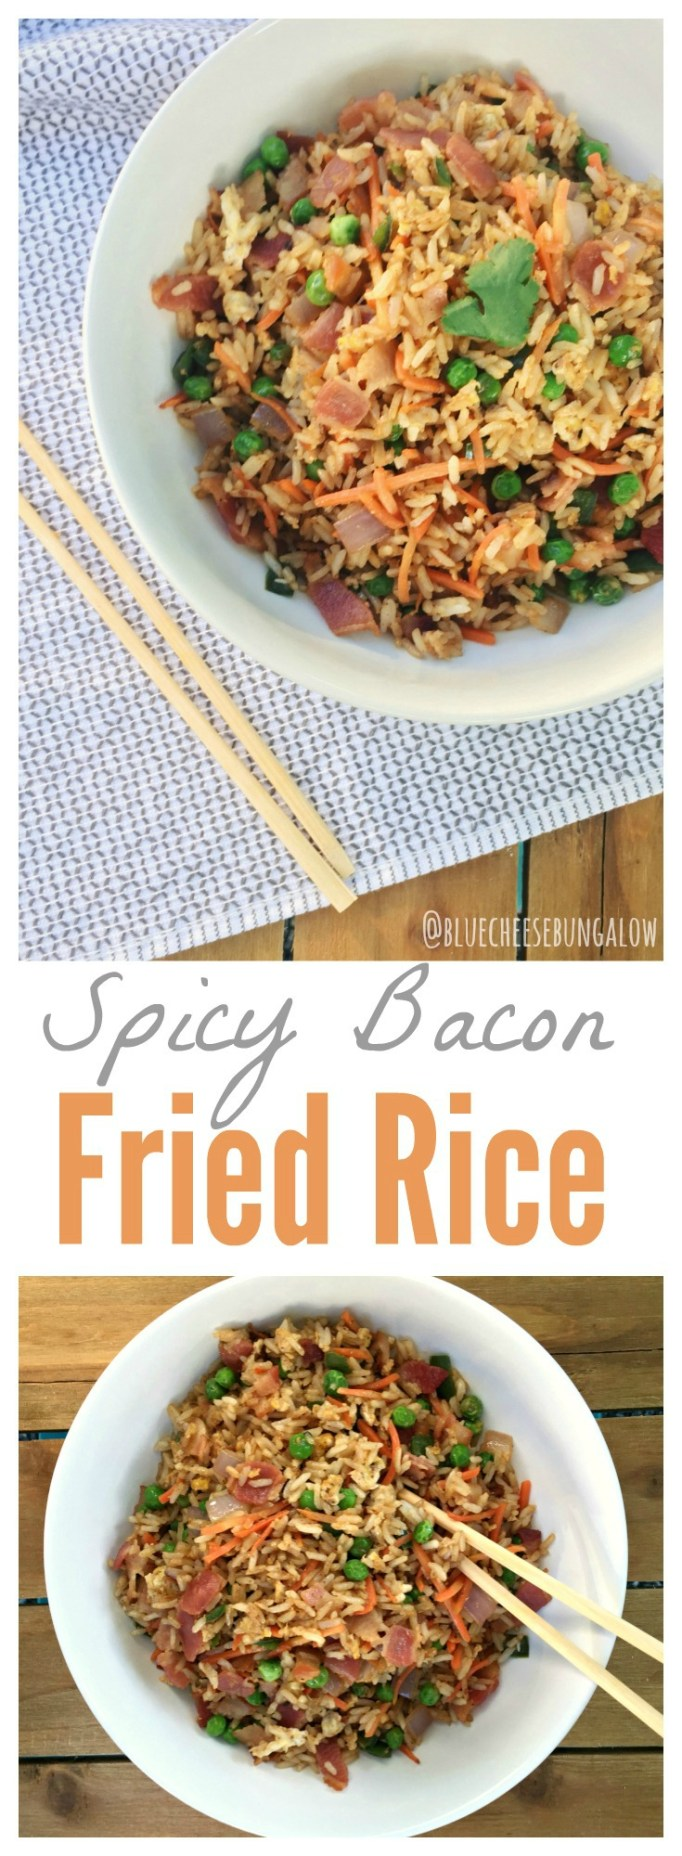 One-Pot Spicy Bacon Fried Rice Recipe from Blue Cheese Bungalow